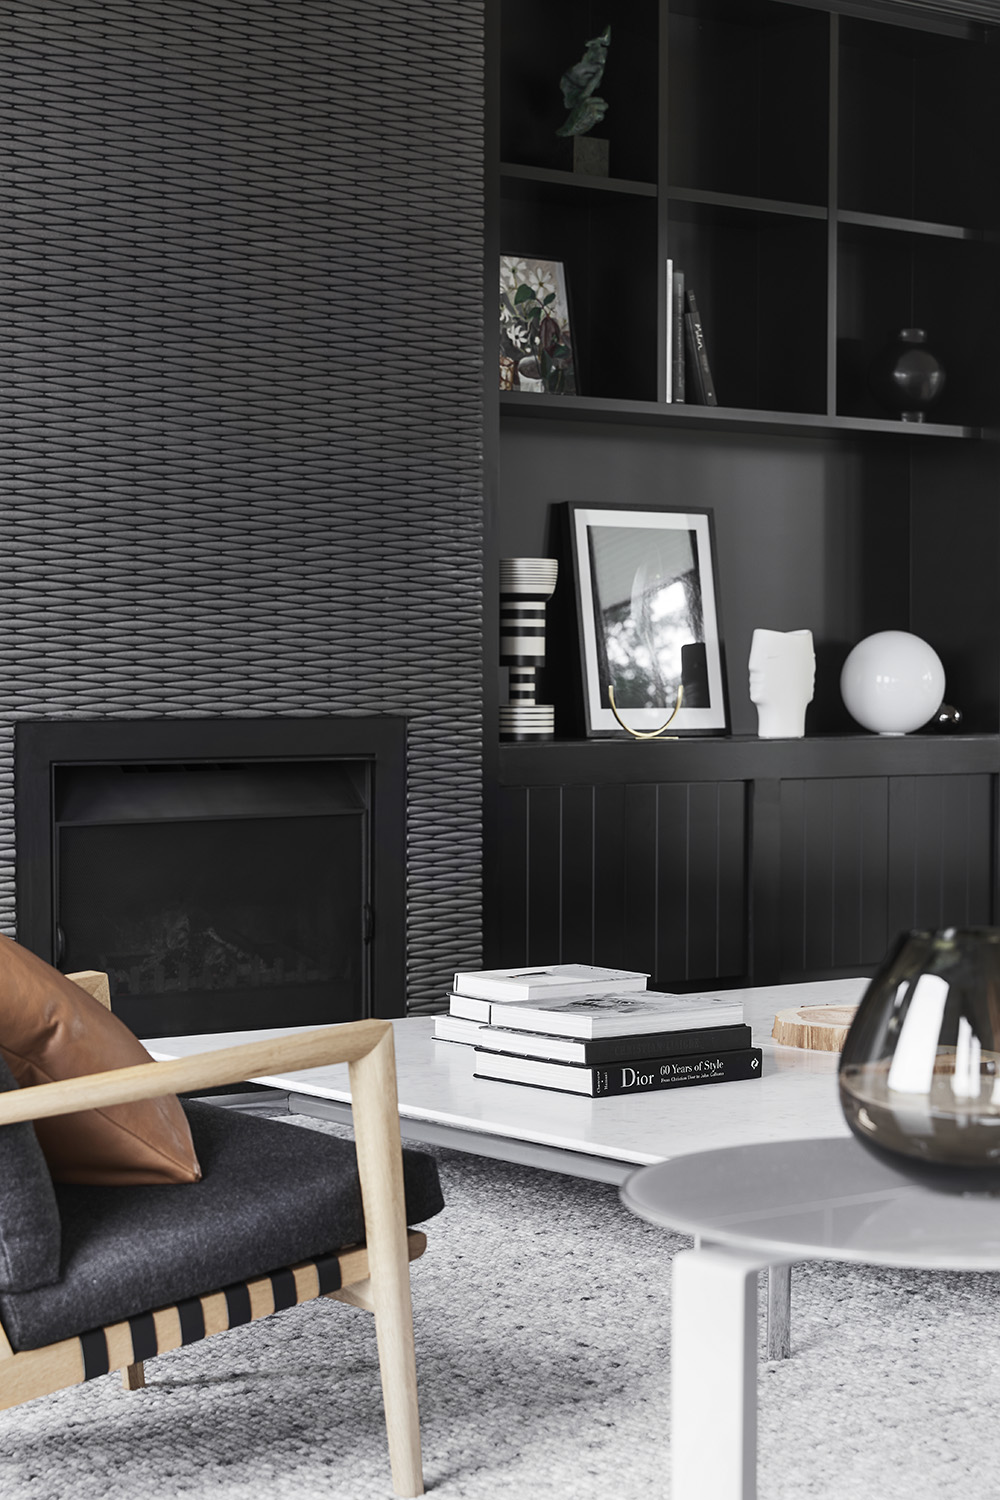 Modern black shelving and cabinetry can be found on either side of a focal fireplace with a silvery-grey tiled surround.